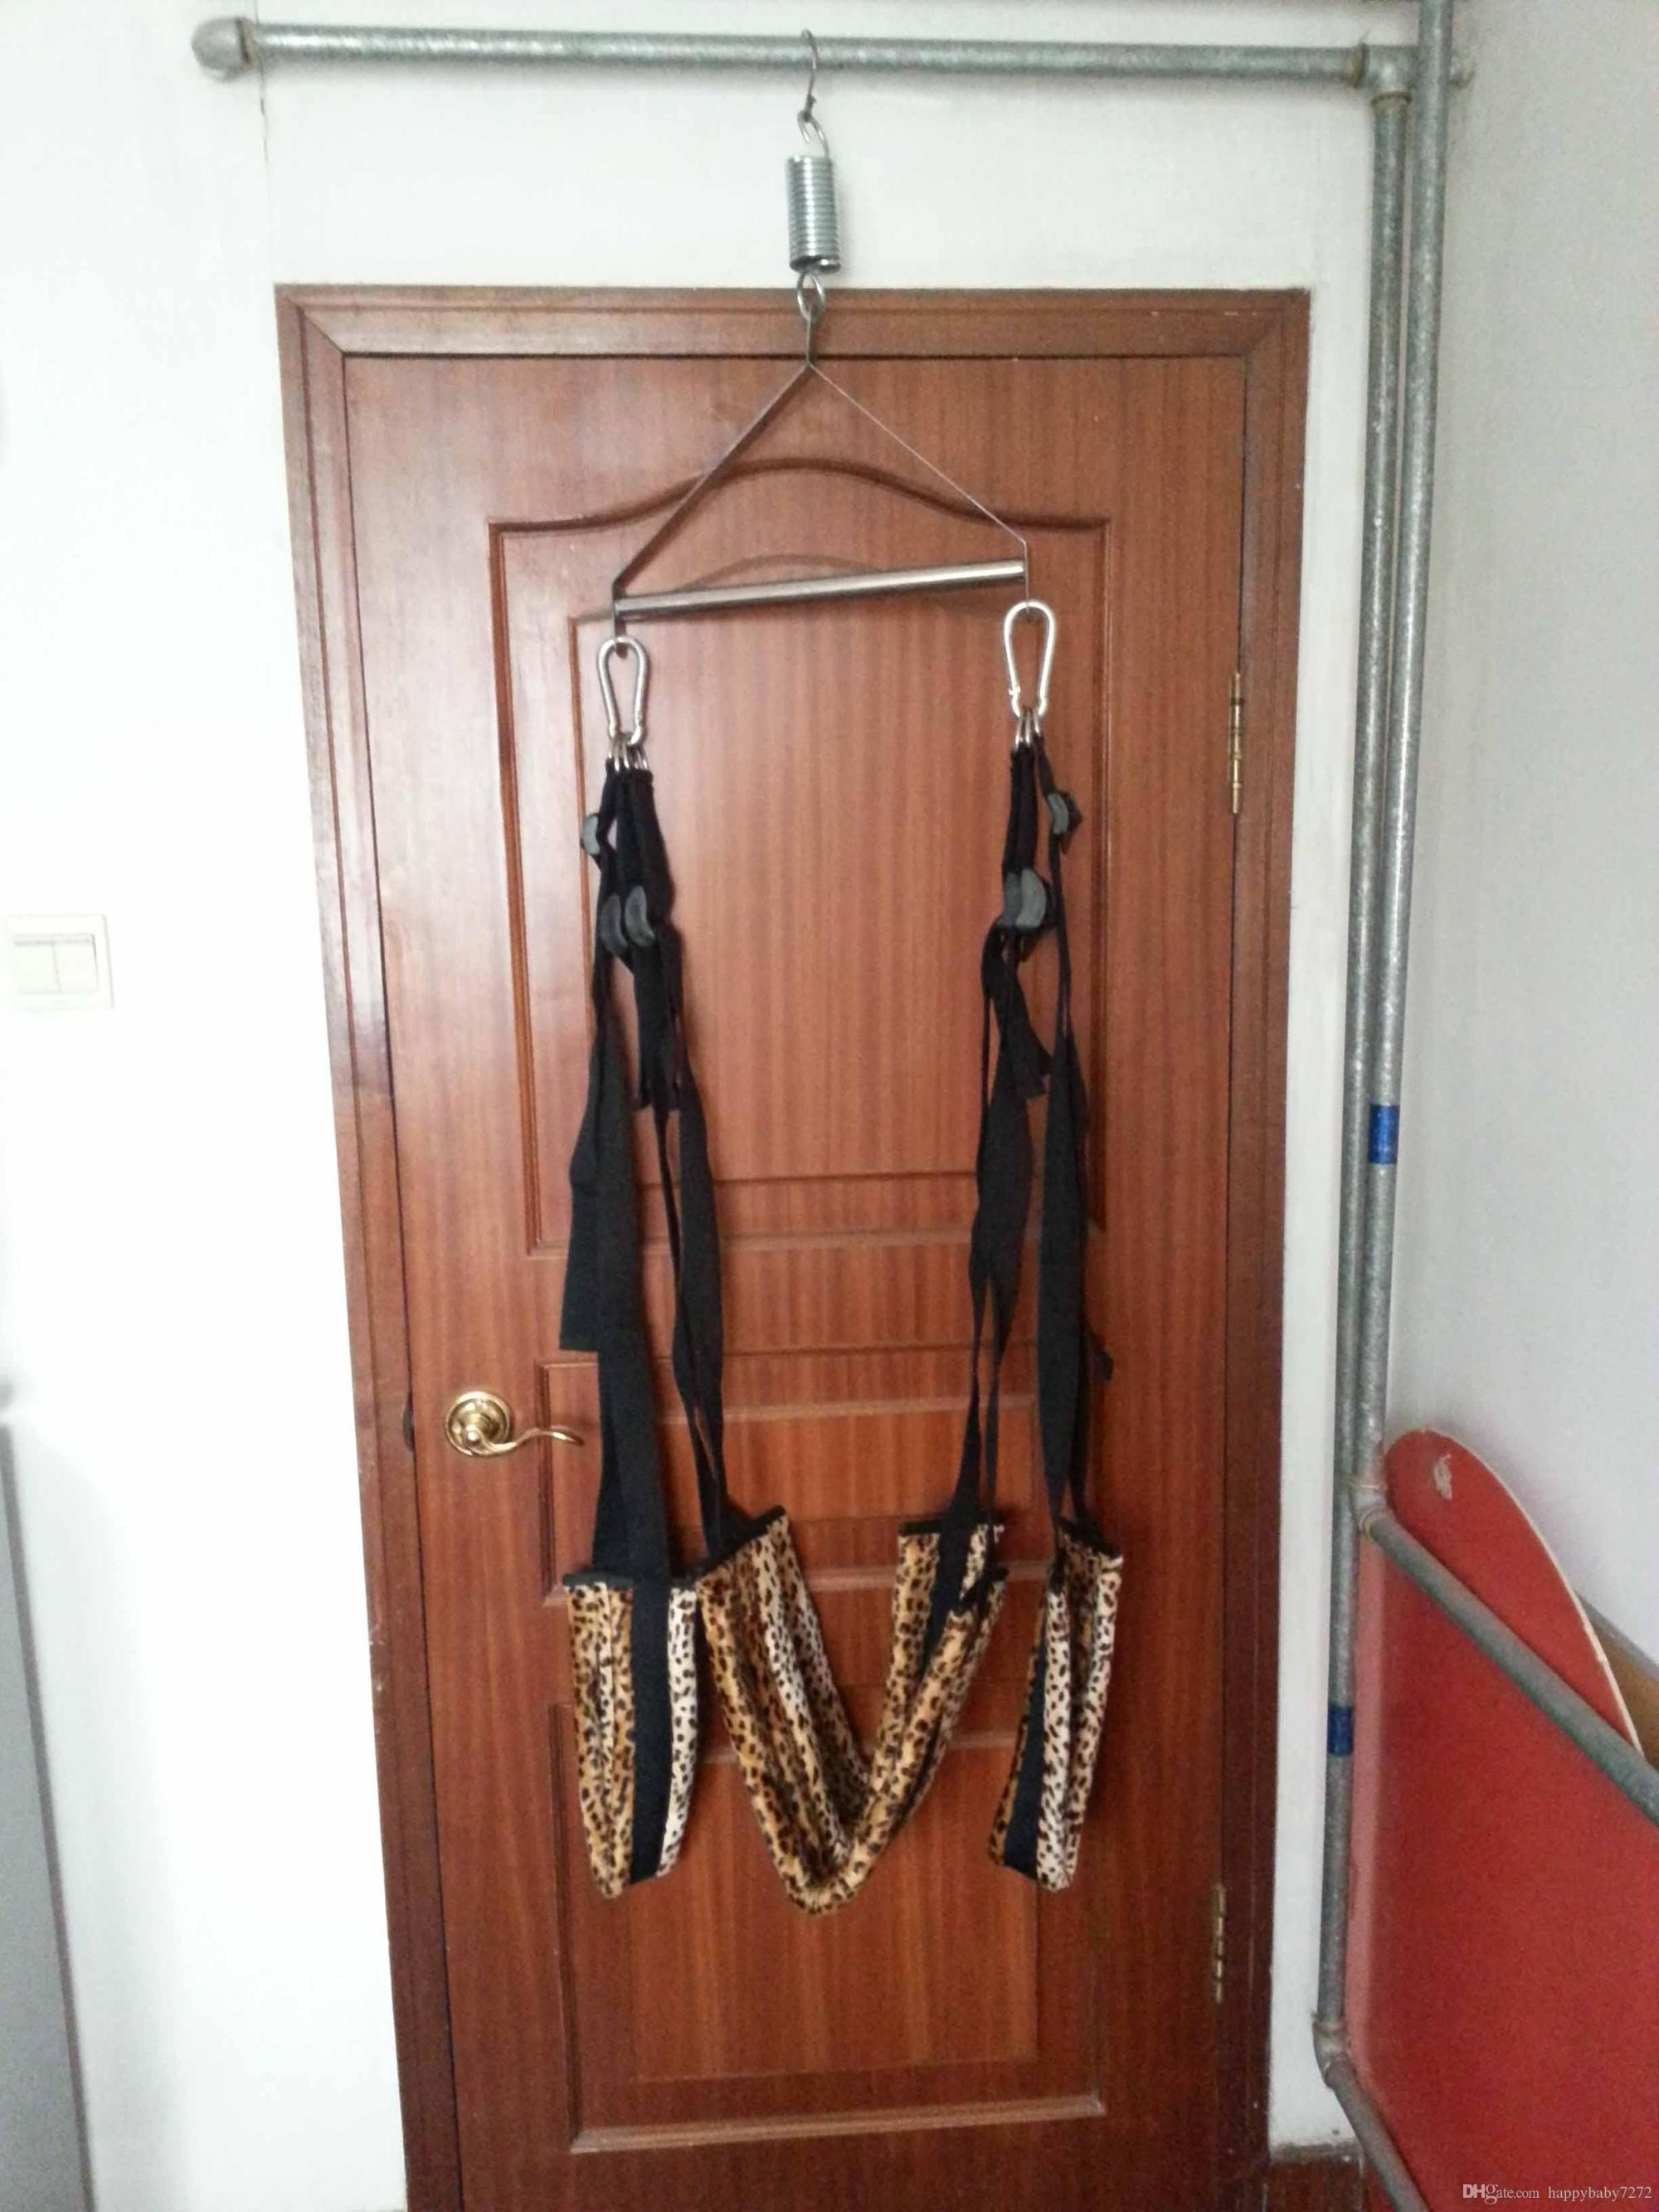 hight resolution of  leopard swing chairs with tripod lover s aid toy fetish bondage body sex swing harness tool new